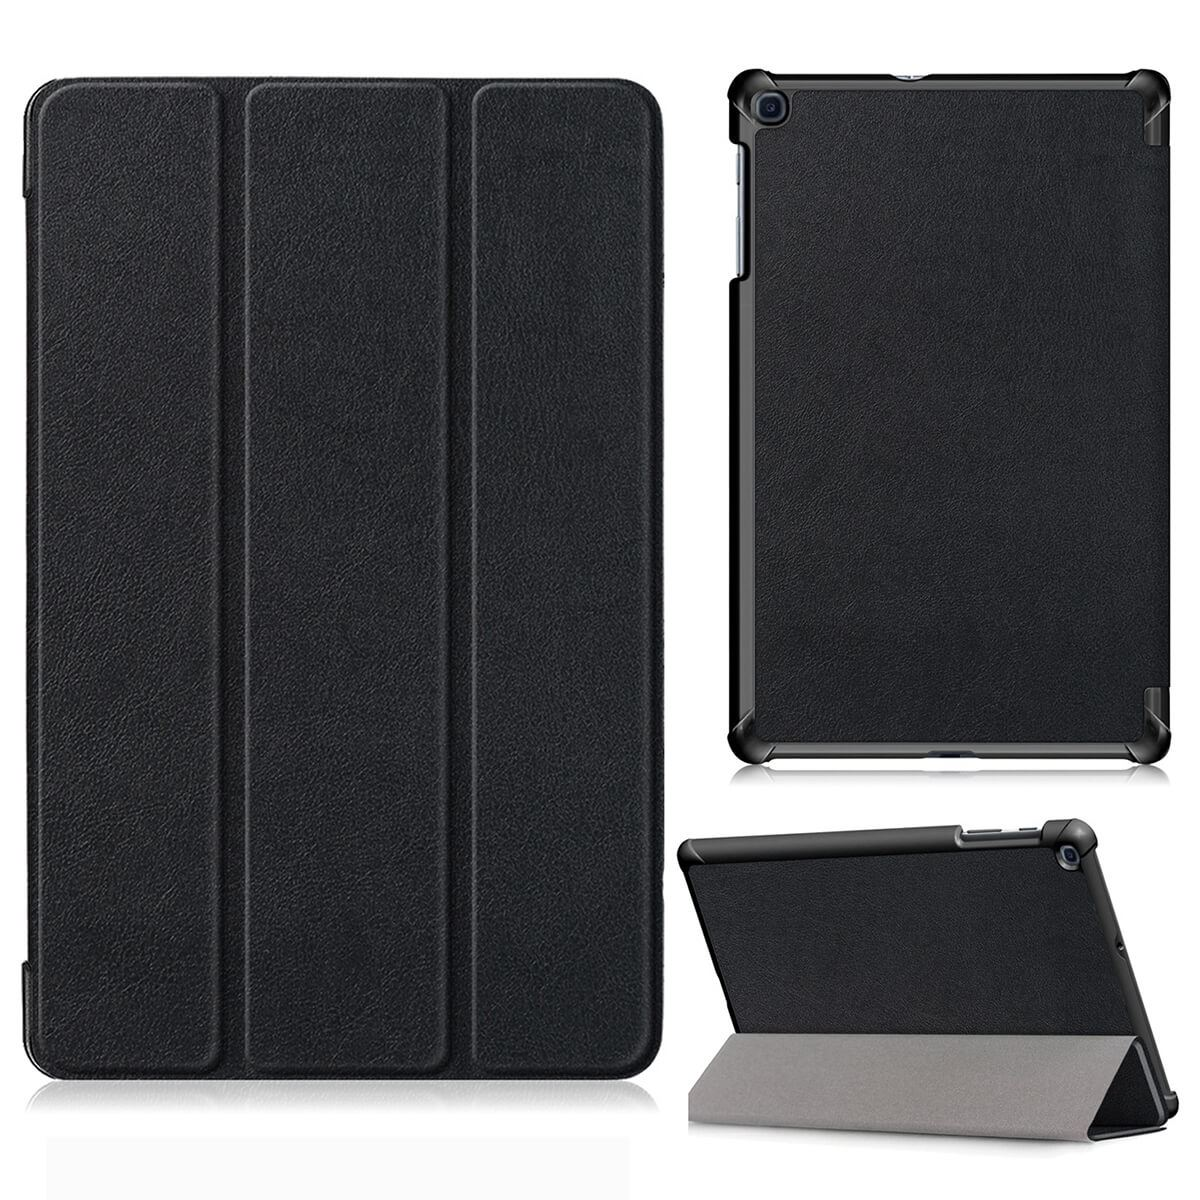 Flip-Cover-Trifold-Case-For-T510-T515-Samsung-Galaxy-Tab-A-2019-10-1-Full-Body thumbnail 7